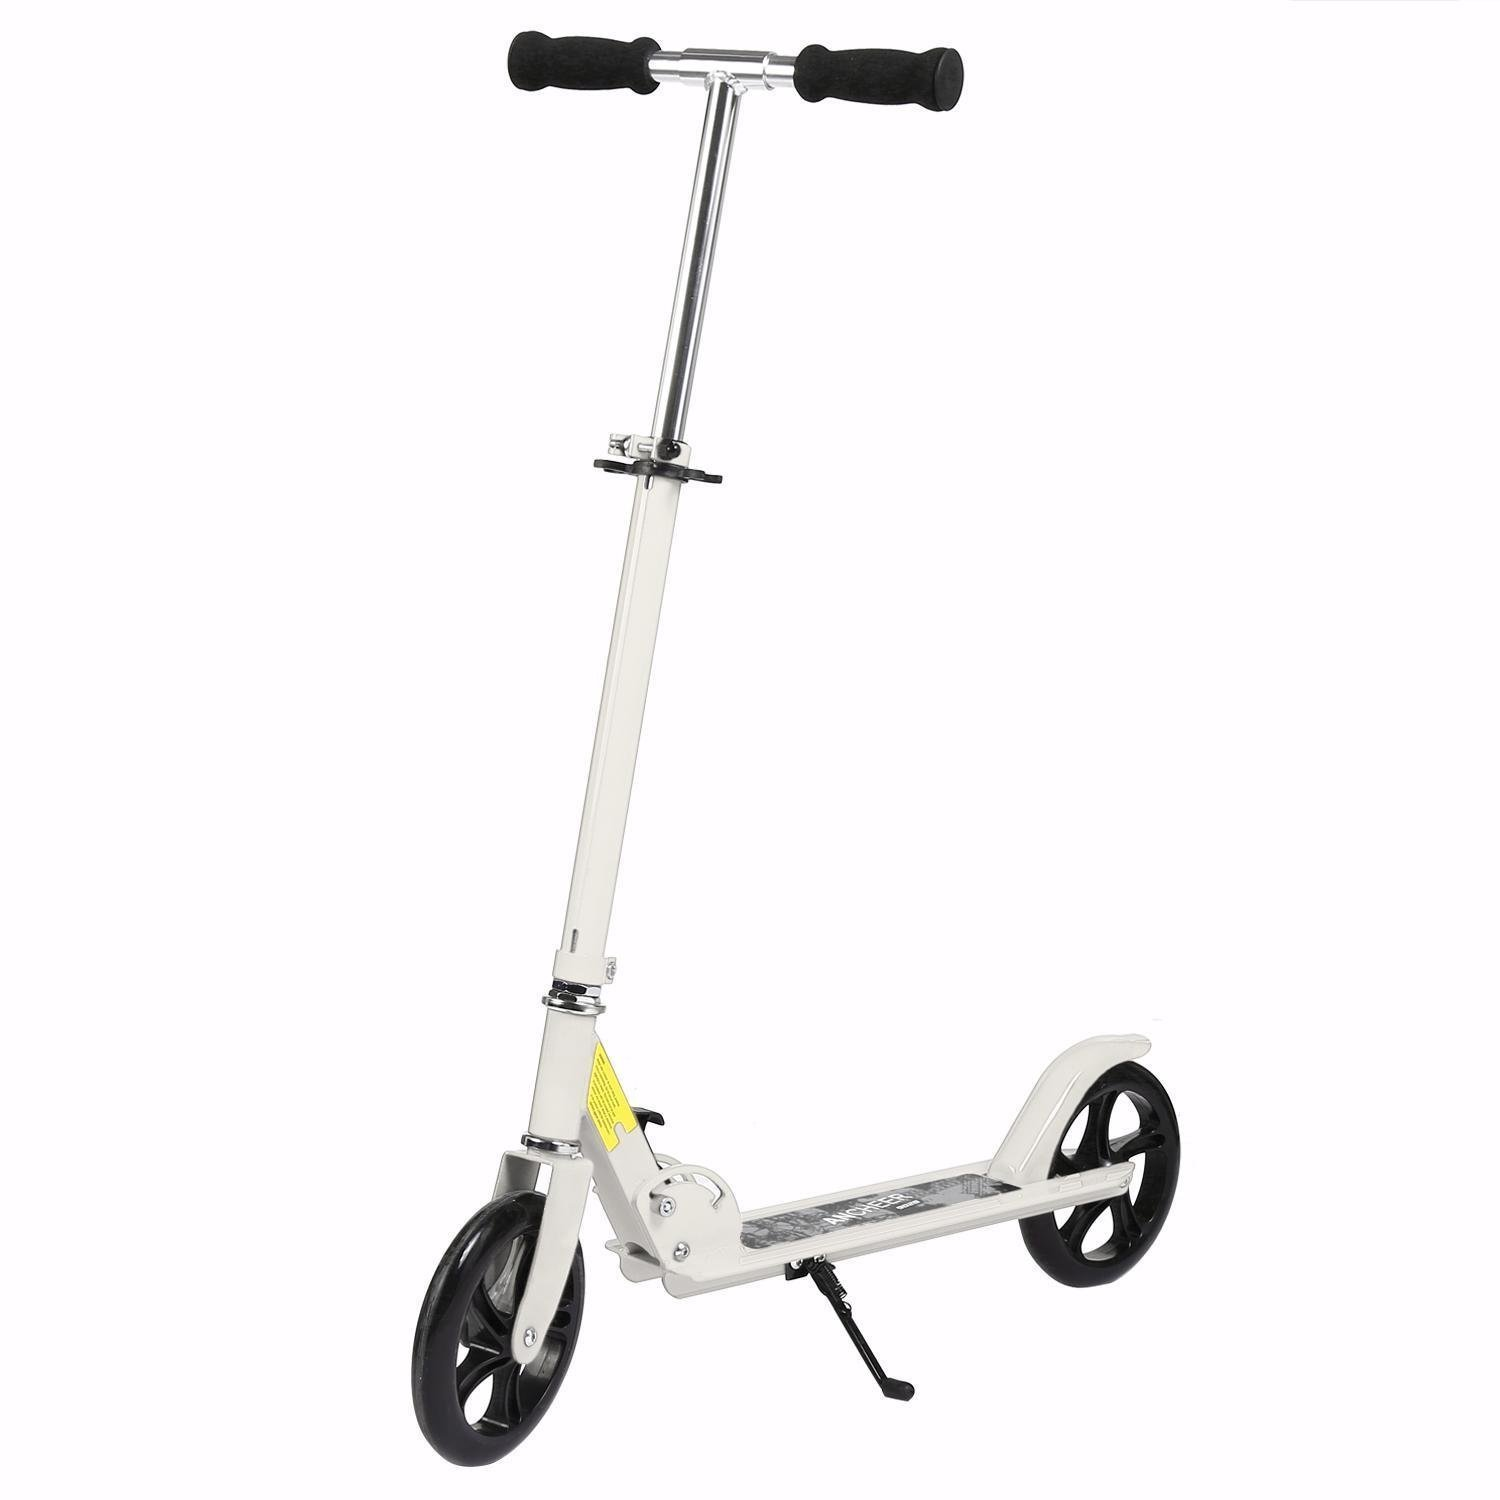 Alloy Kick Scooter for Men, 3 Levels Adjustable Height (US Stock)